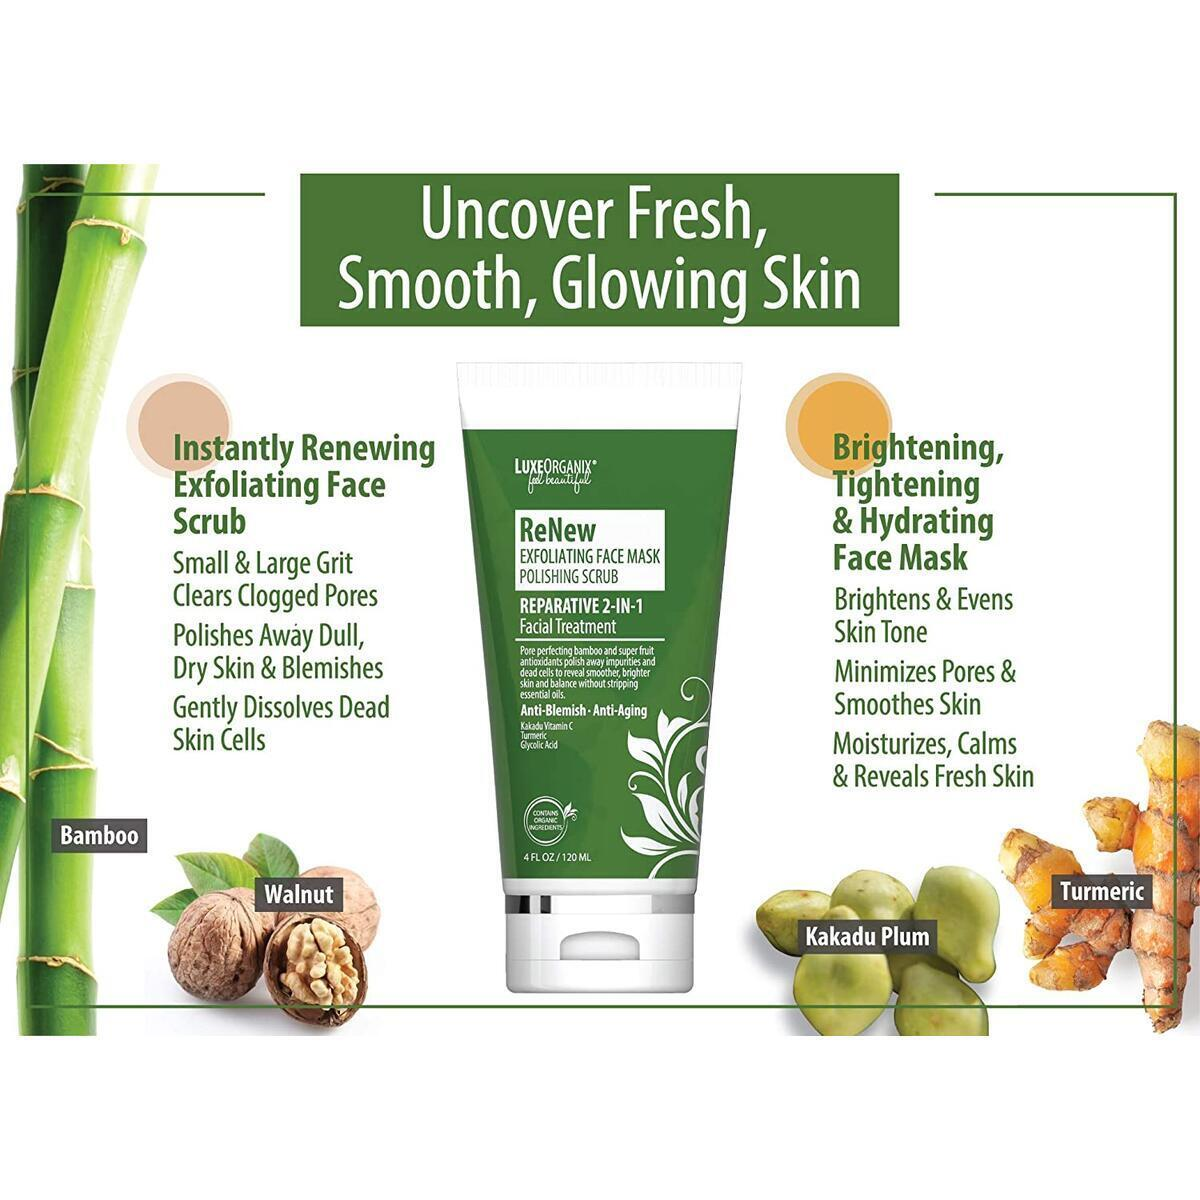 LuxeOrganix Exfoliating Face Scrub Skin Care Mask (Not Valid With Any Other Offers Or Coupons)